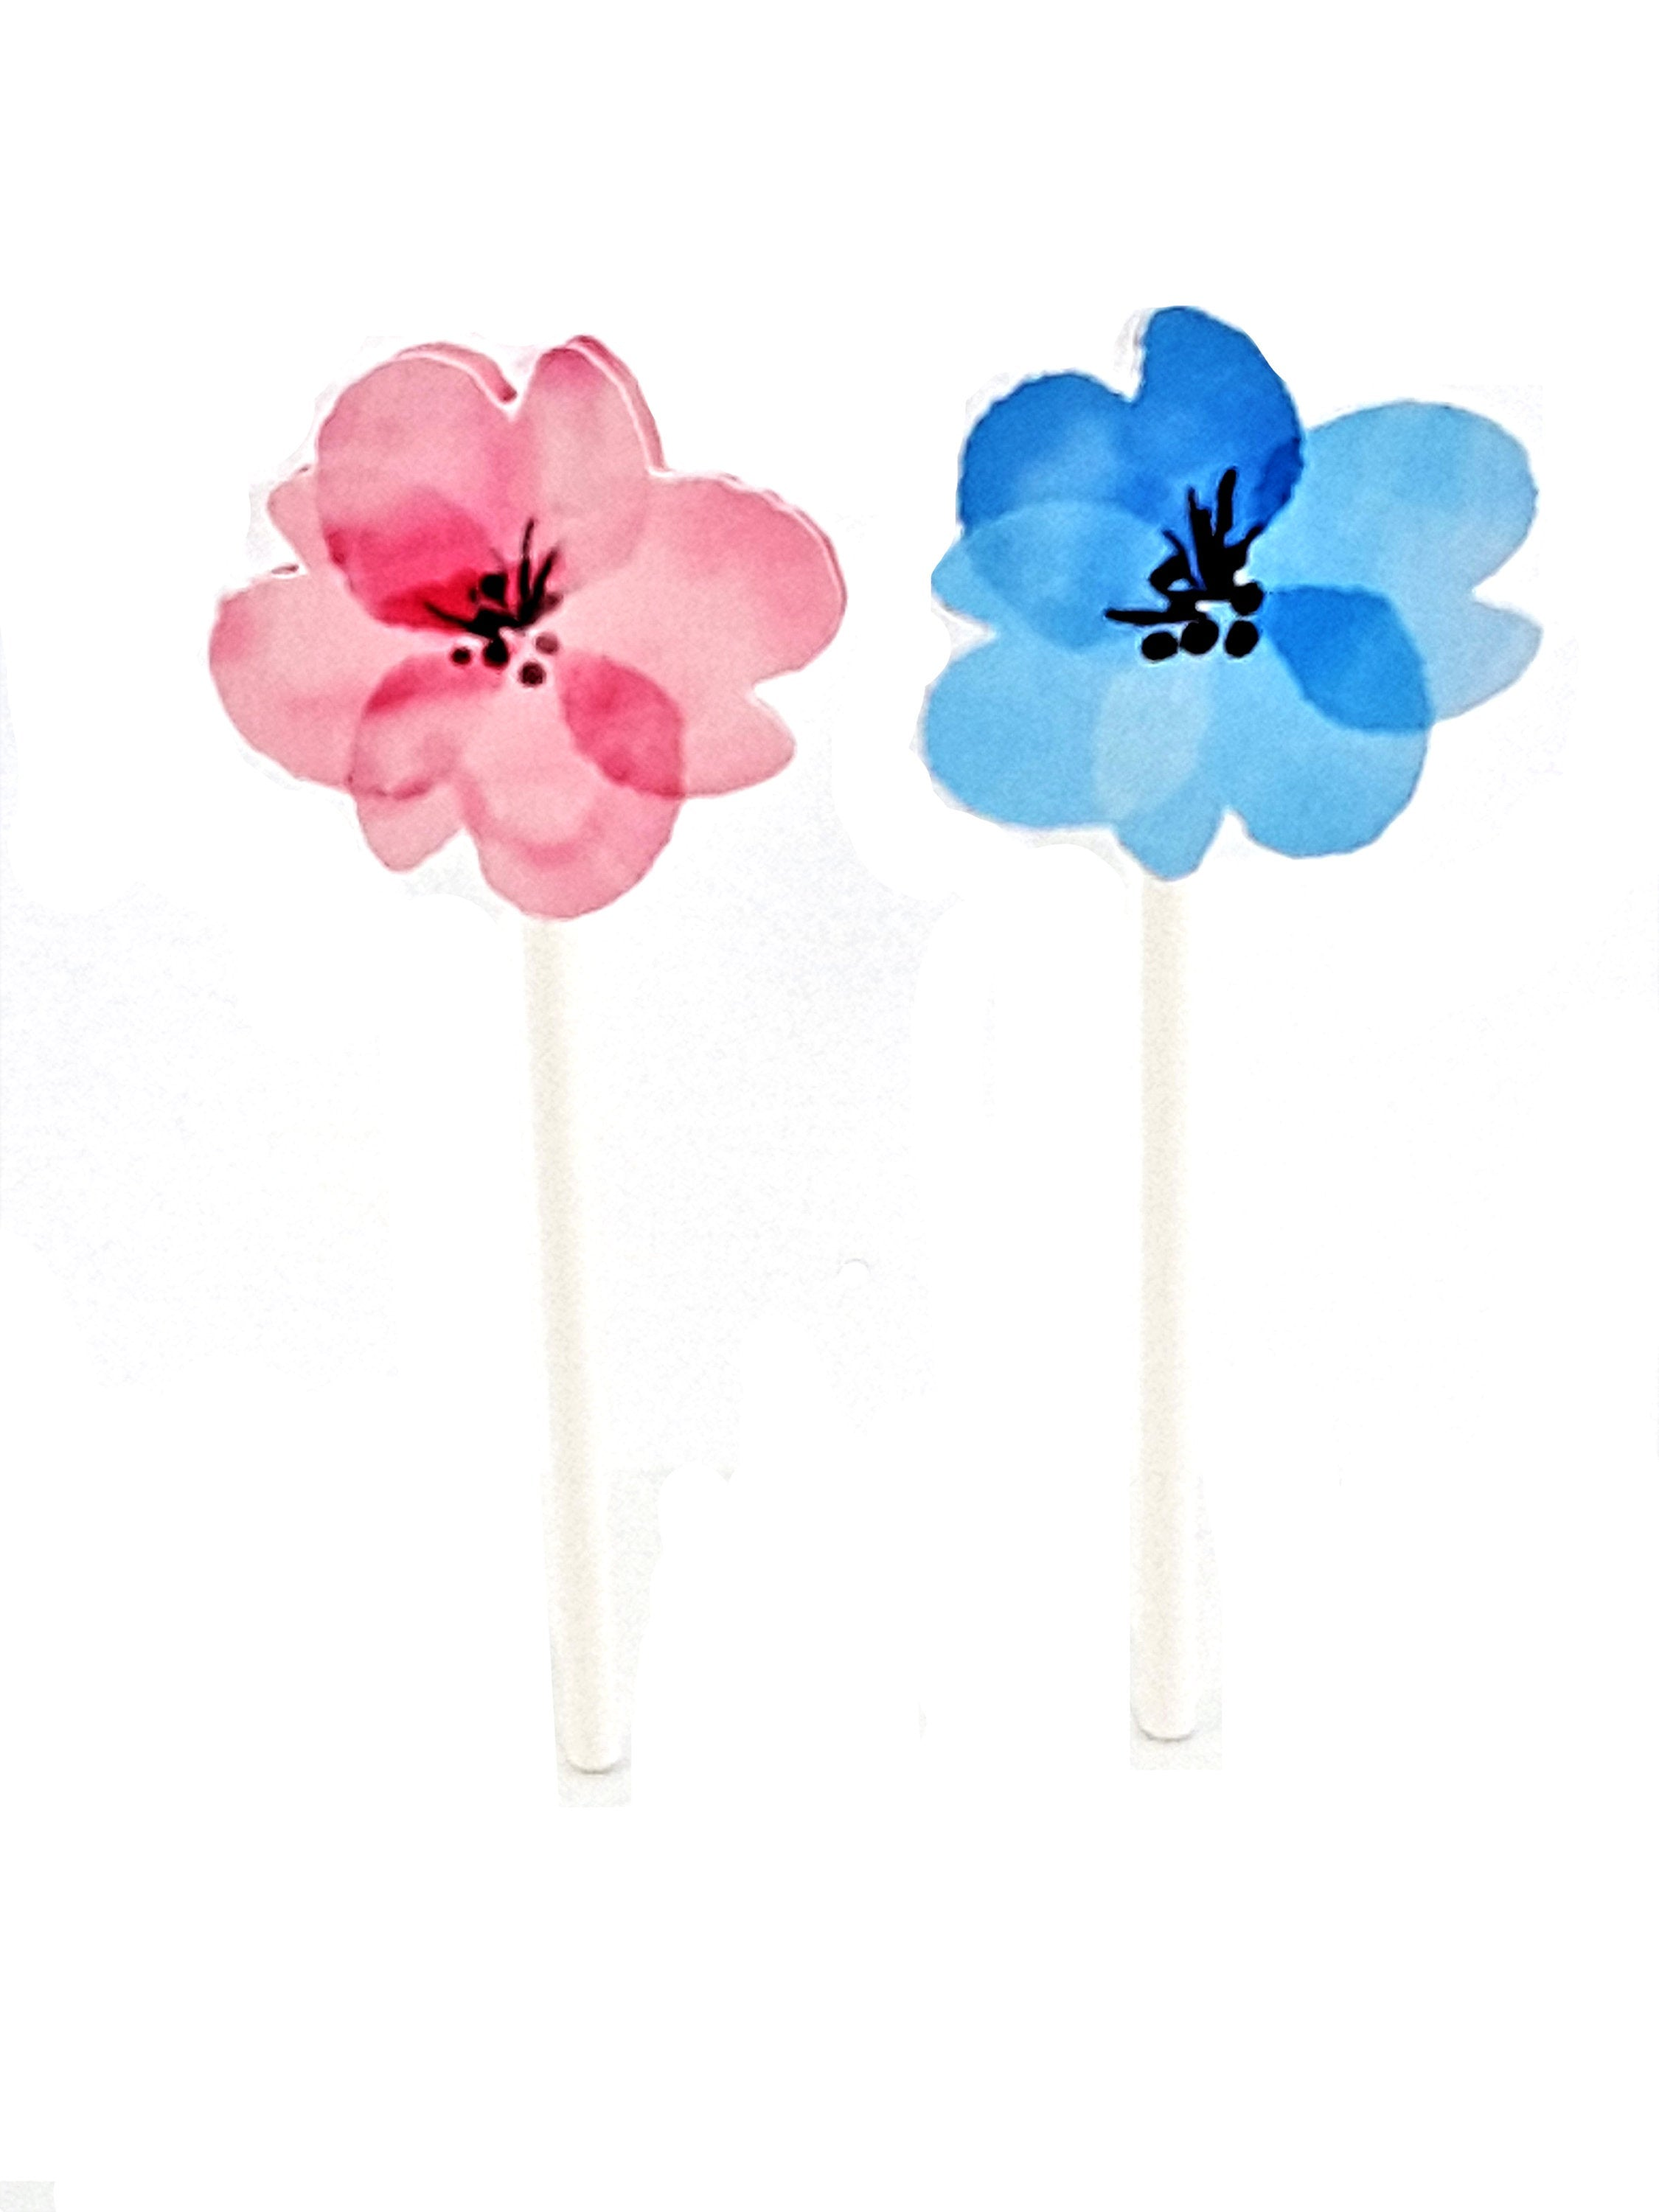 Personalized Cupcake Toppers with Pink and Blue Elephants, Bows, Stars, Flowers & Hearts - TheLastWordBish.com